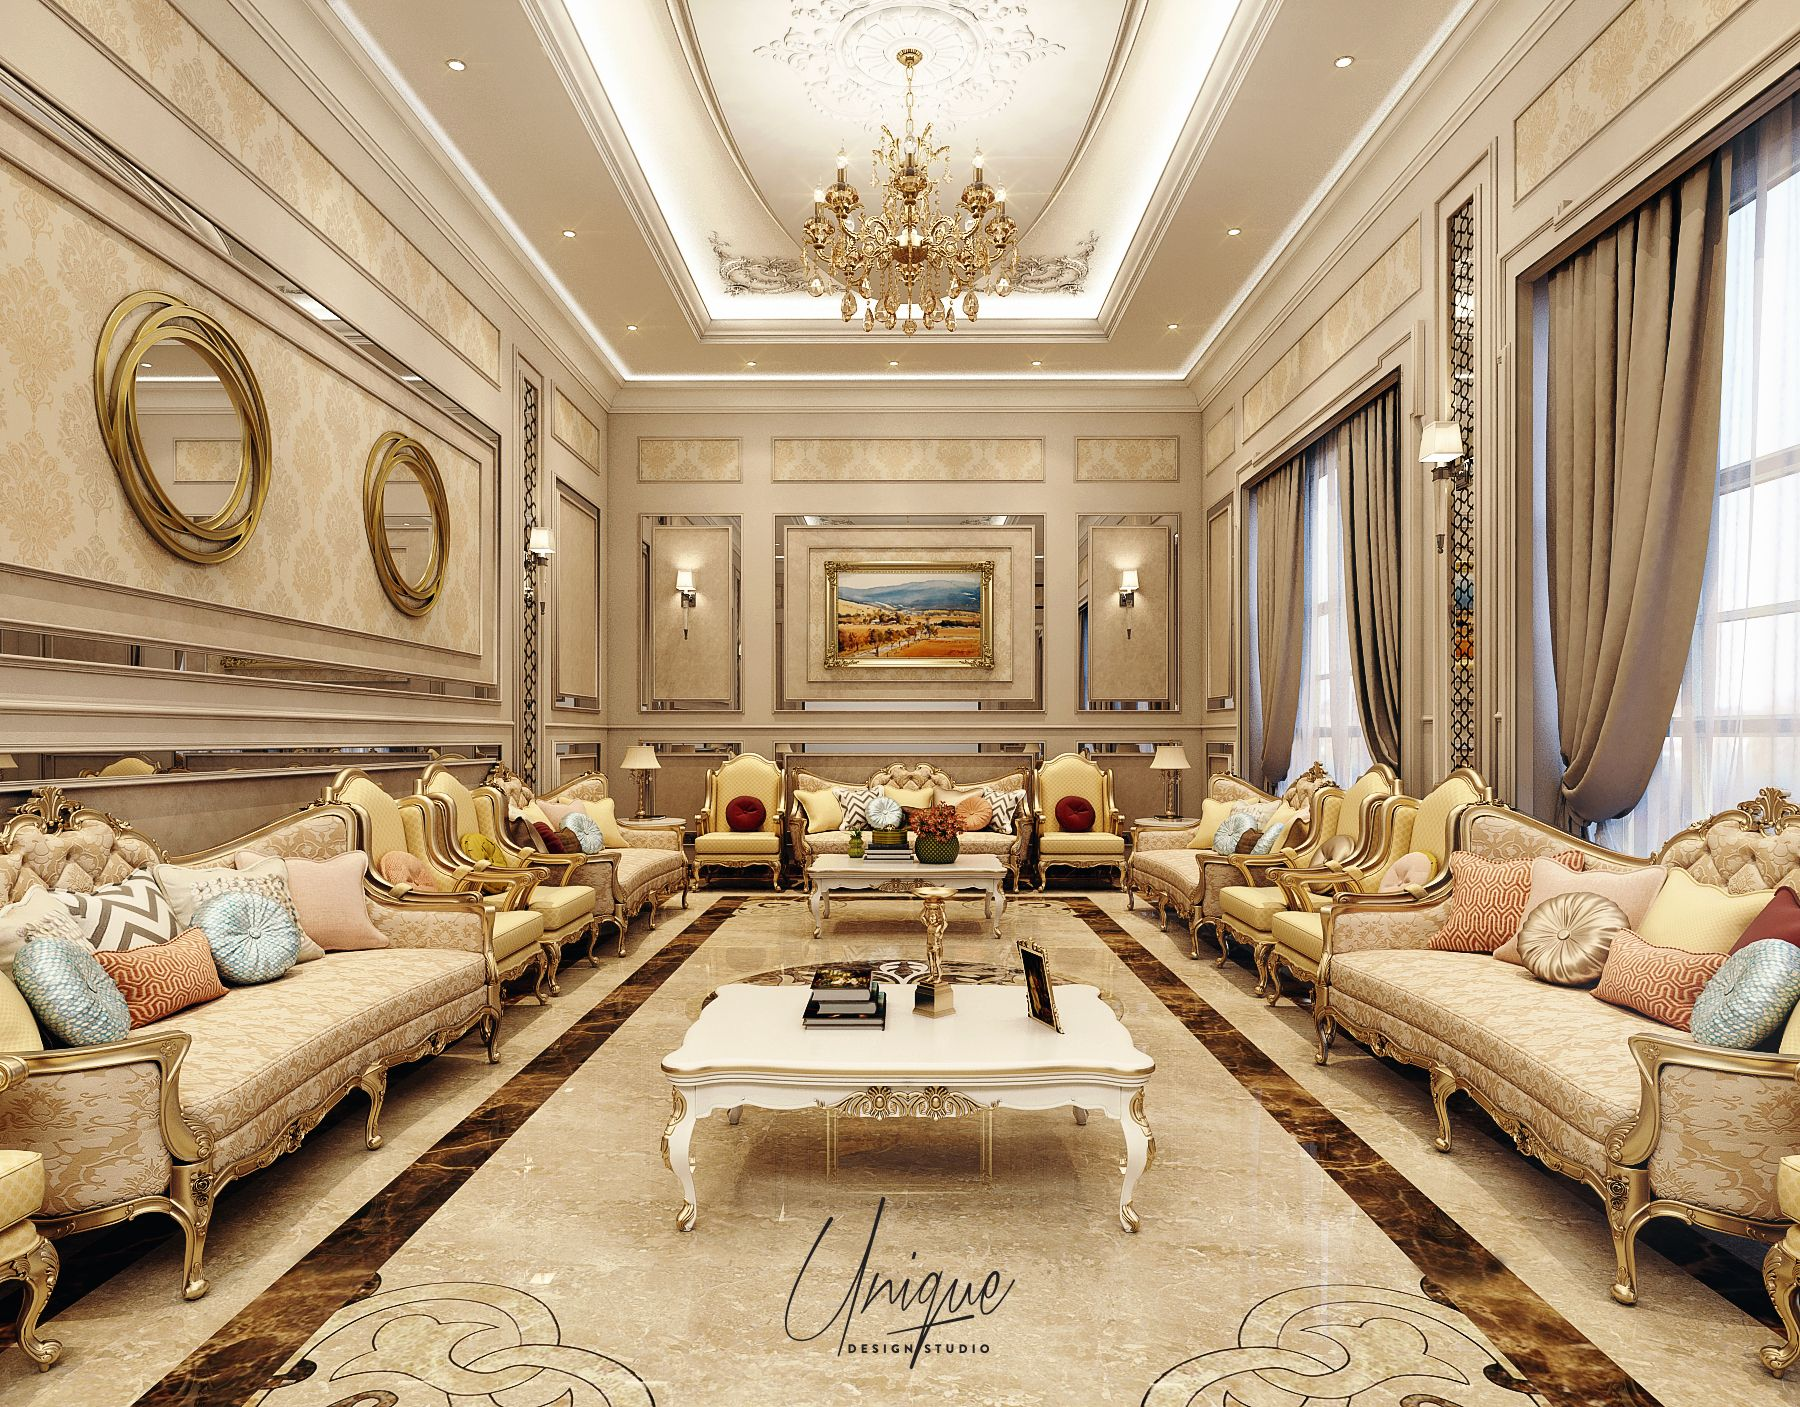 Classic Majles On Behance In 2020 Luxury Living Room Design Luxury House Interior Design Luxury Living Room Decor